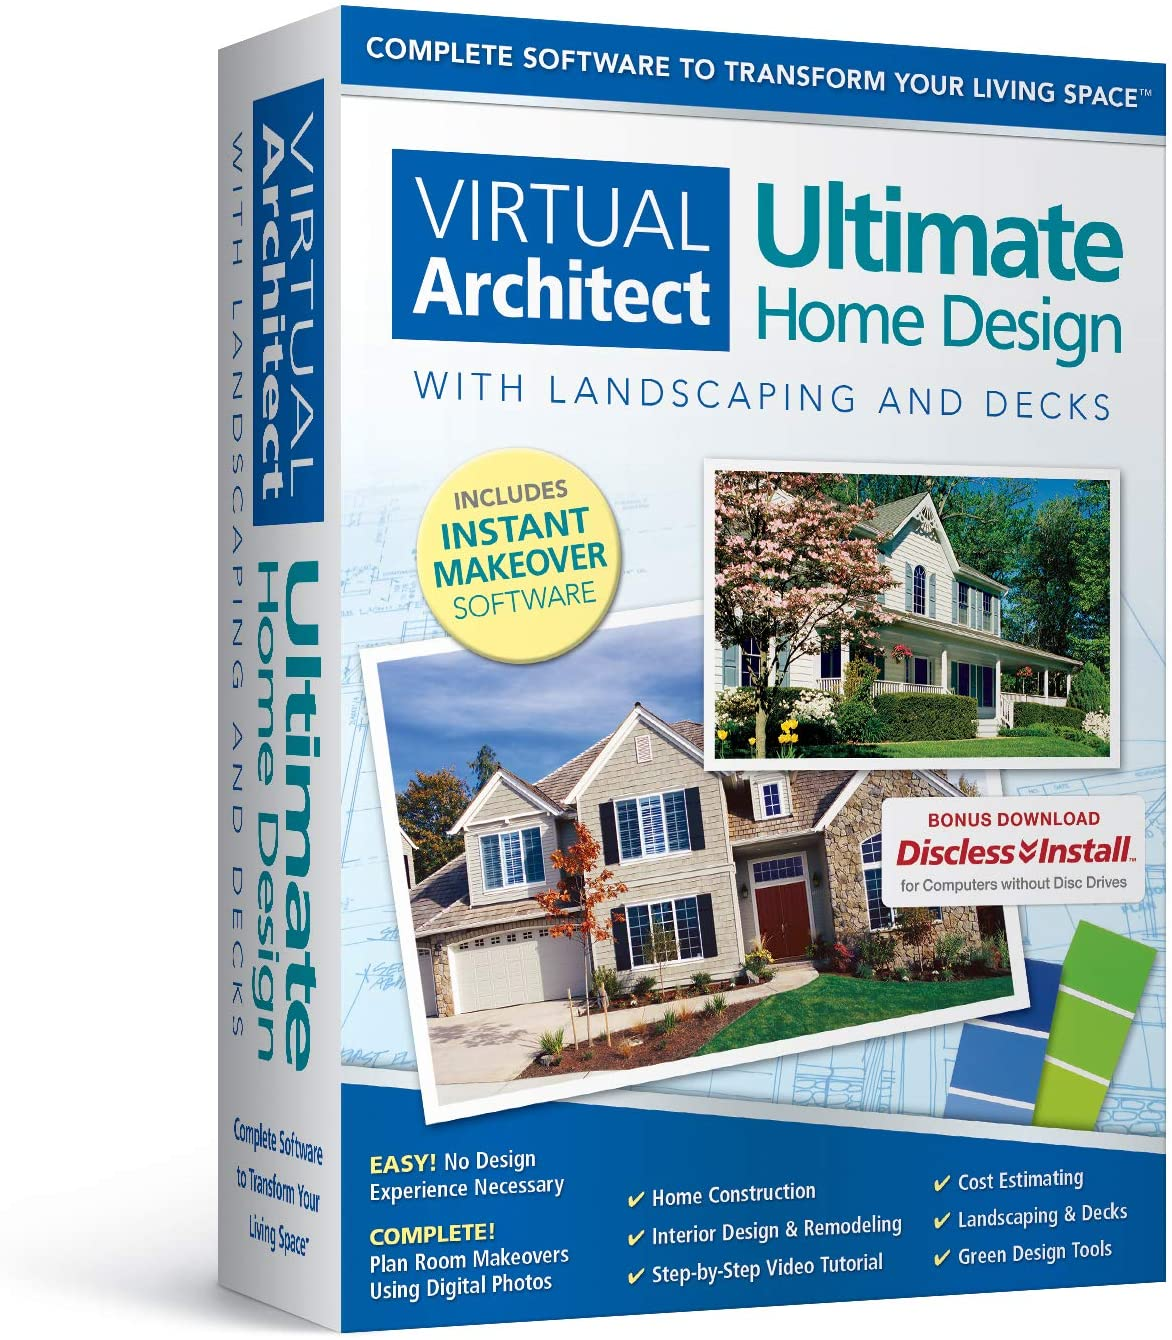 Virtual Architect Ultimate Home Design with Landscaping and Decks 12.12